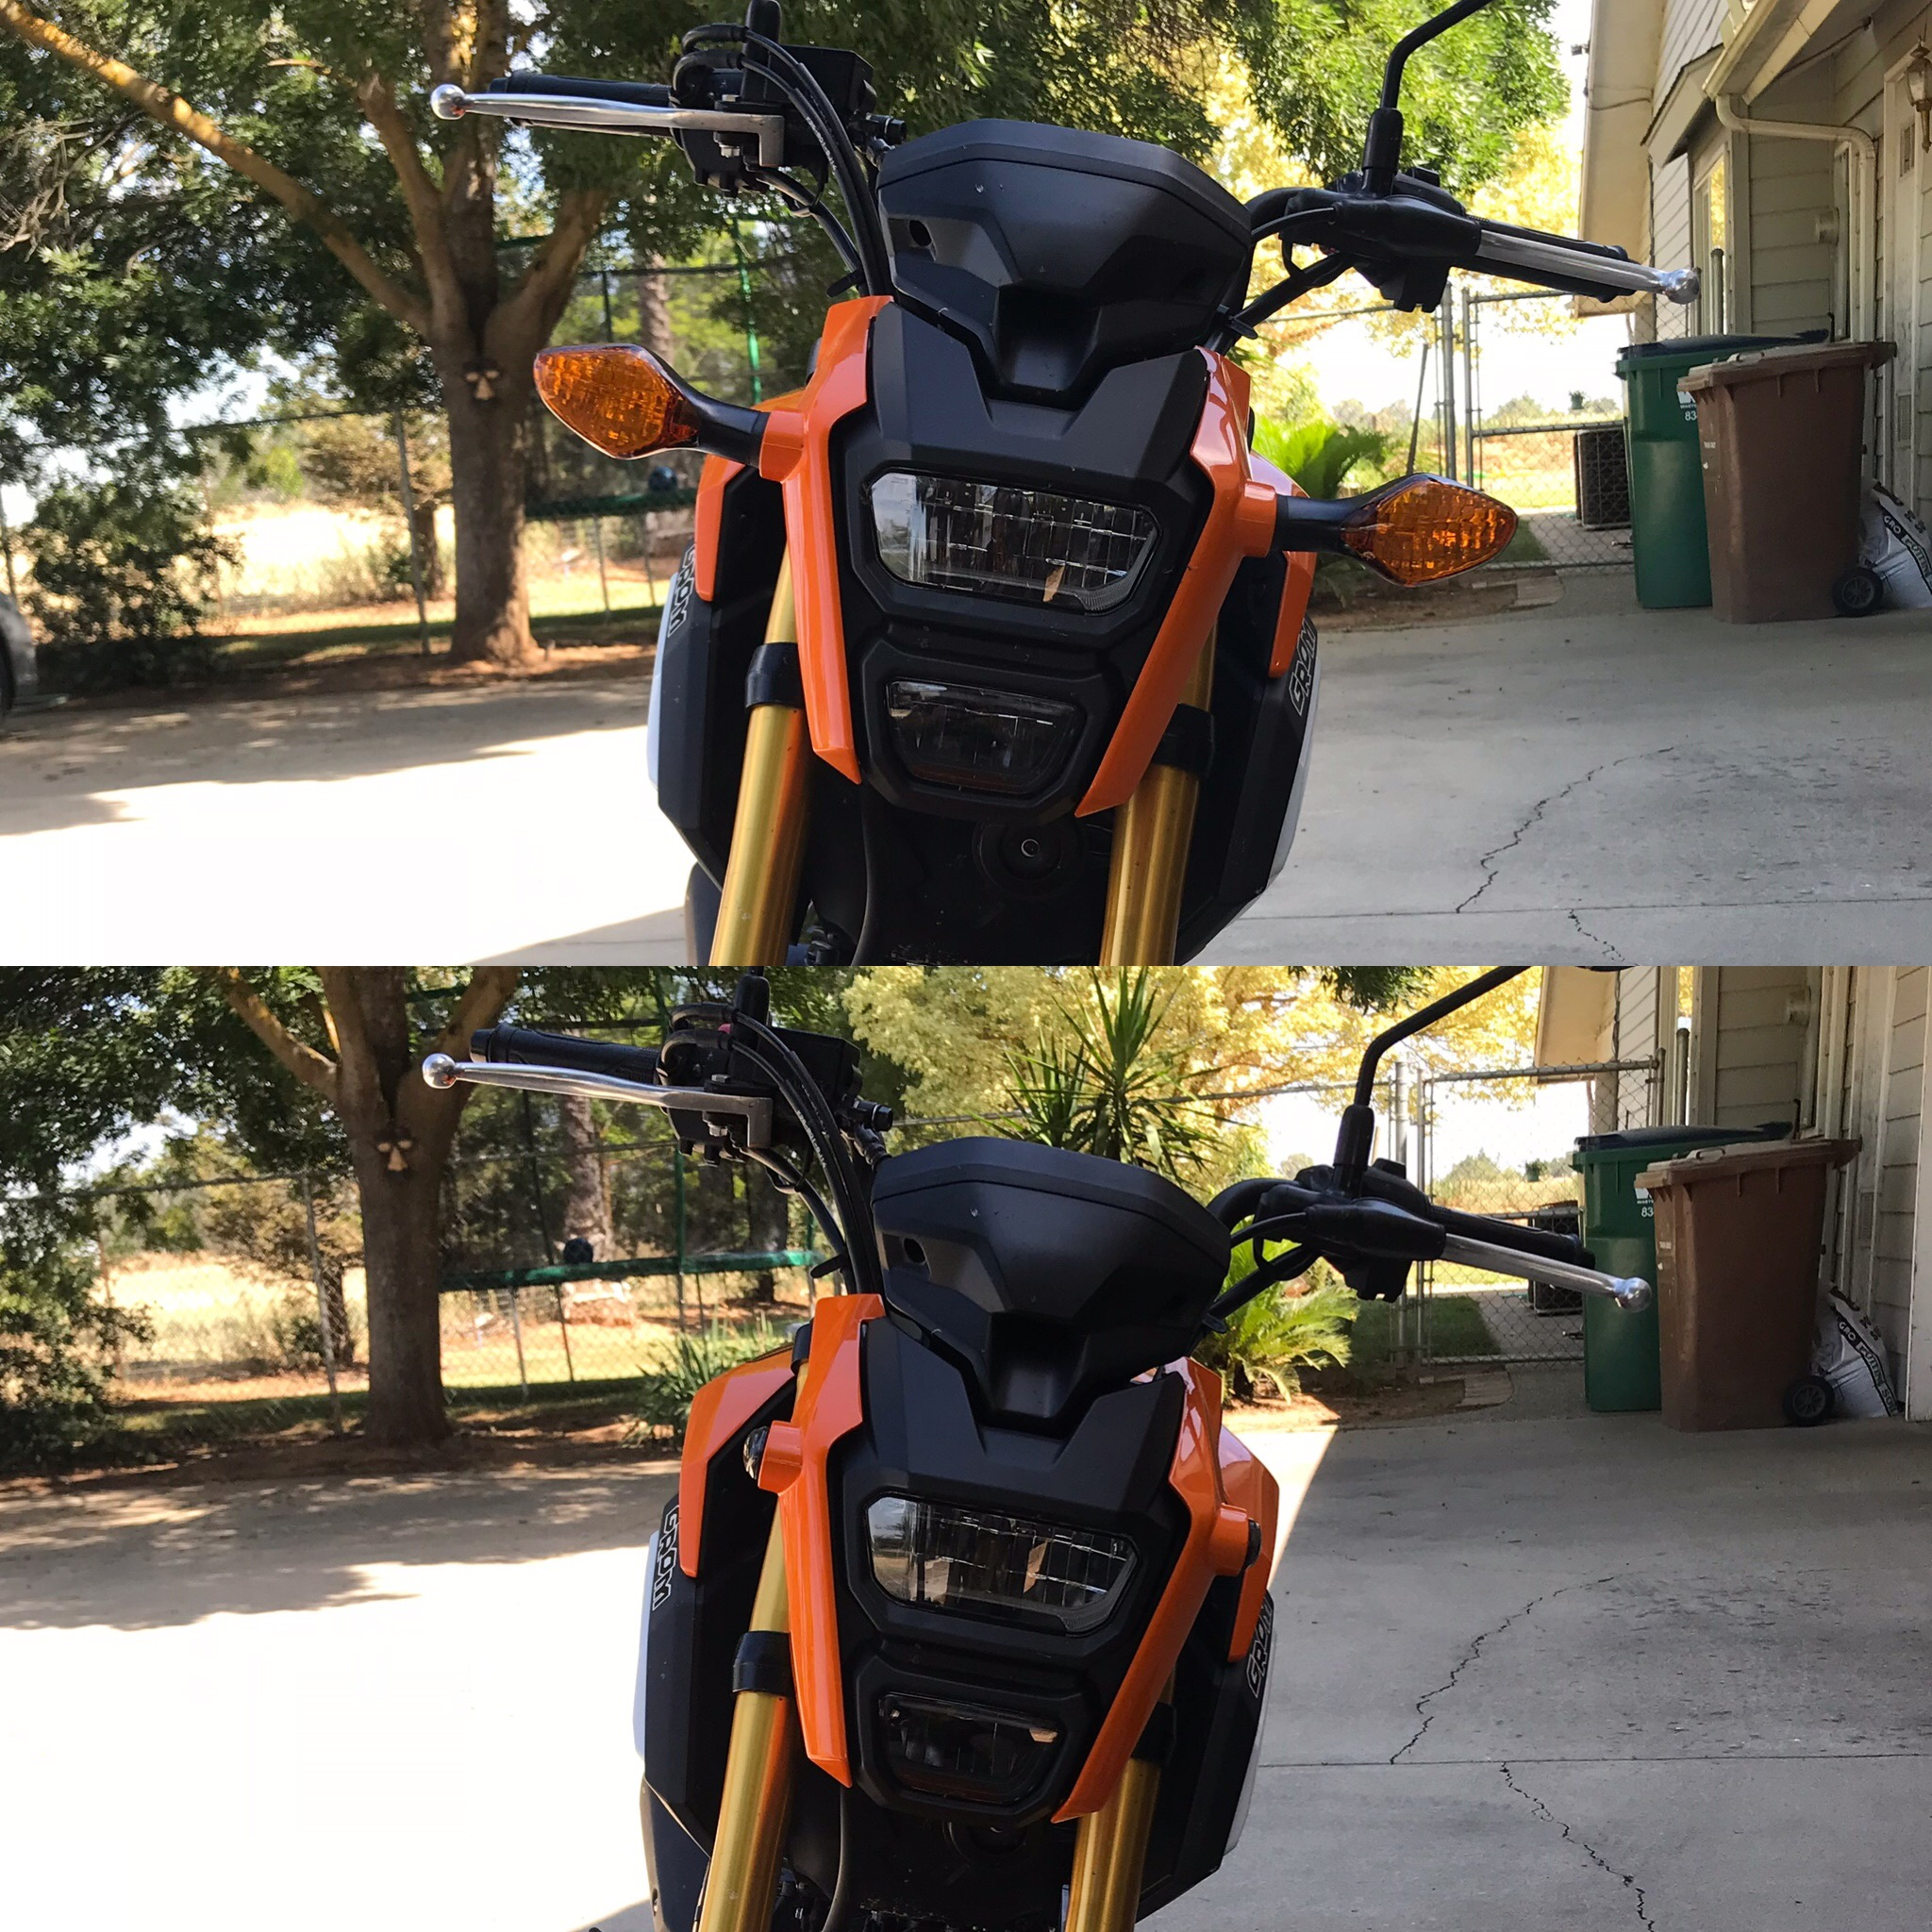 """The """"What did you do to your Grom today?"""" thread-7c3b1527-183b-4ba8-ad9a-cbf2e387104a_1562178889441.jpeg"""